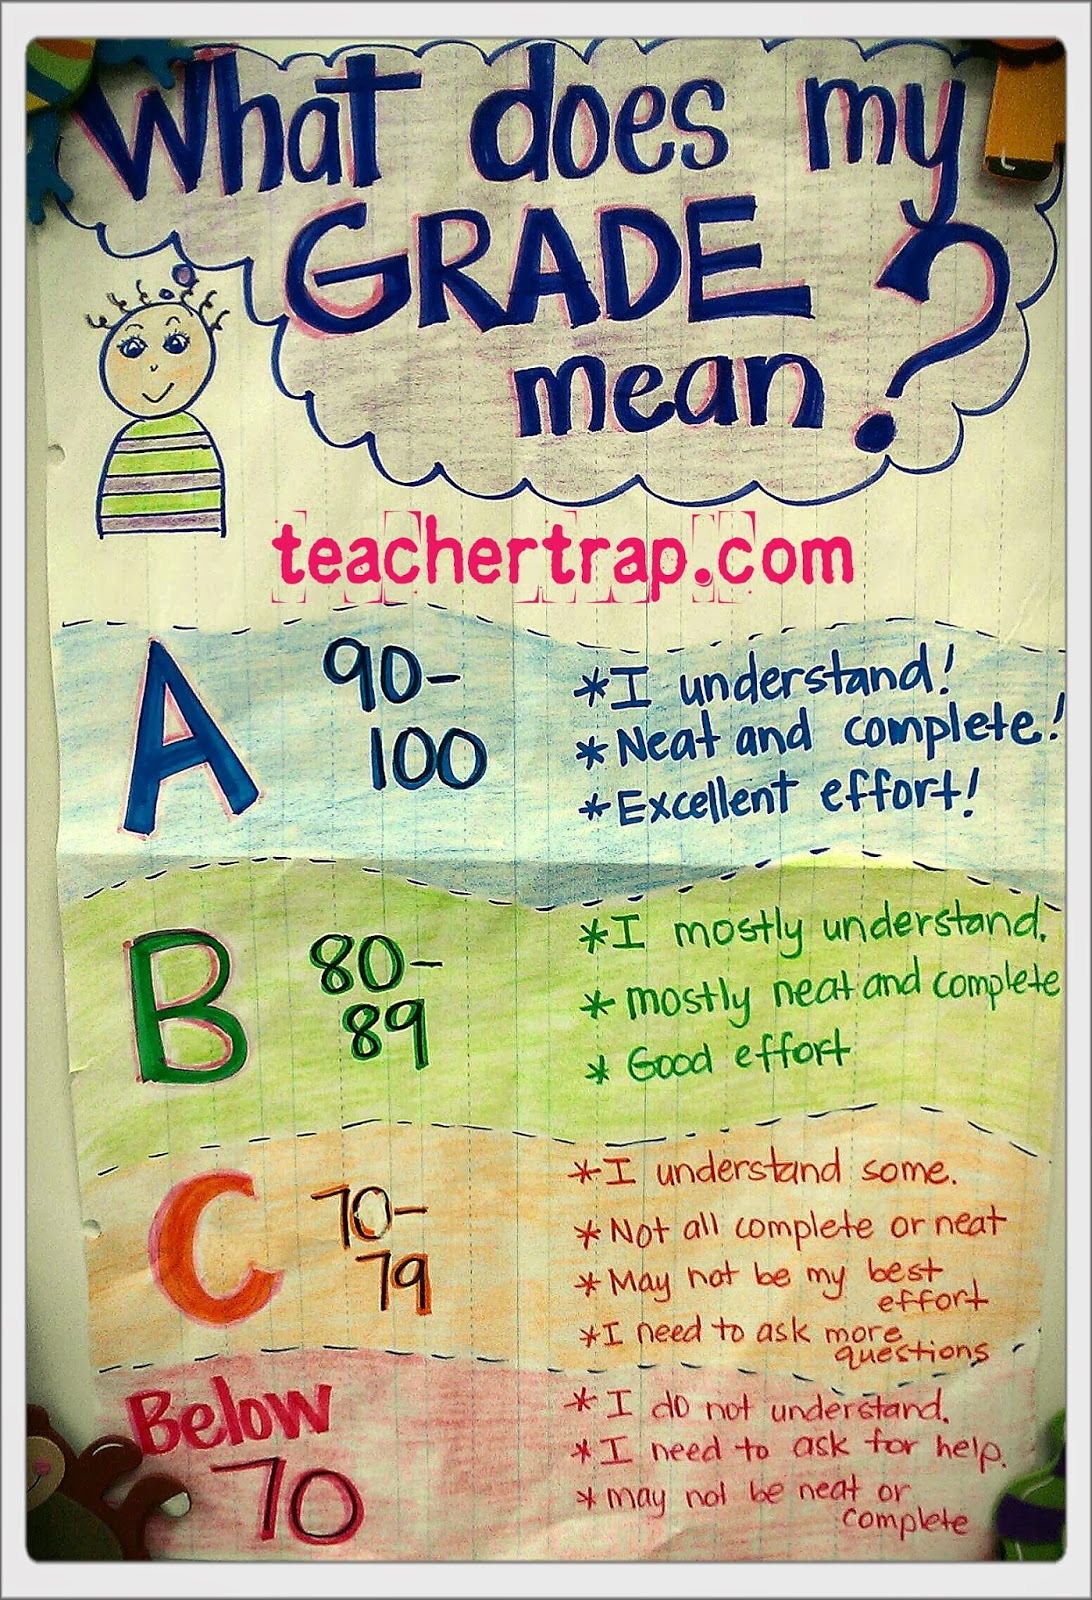 Scale Up Classroom Design And Use Can Facilitate Learning ~ Shades of grades teacher trap